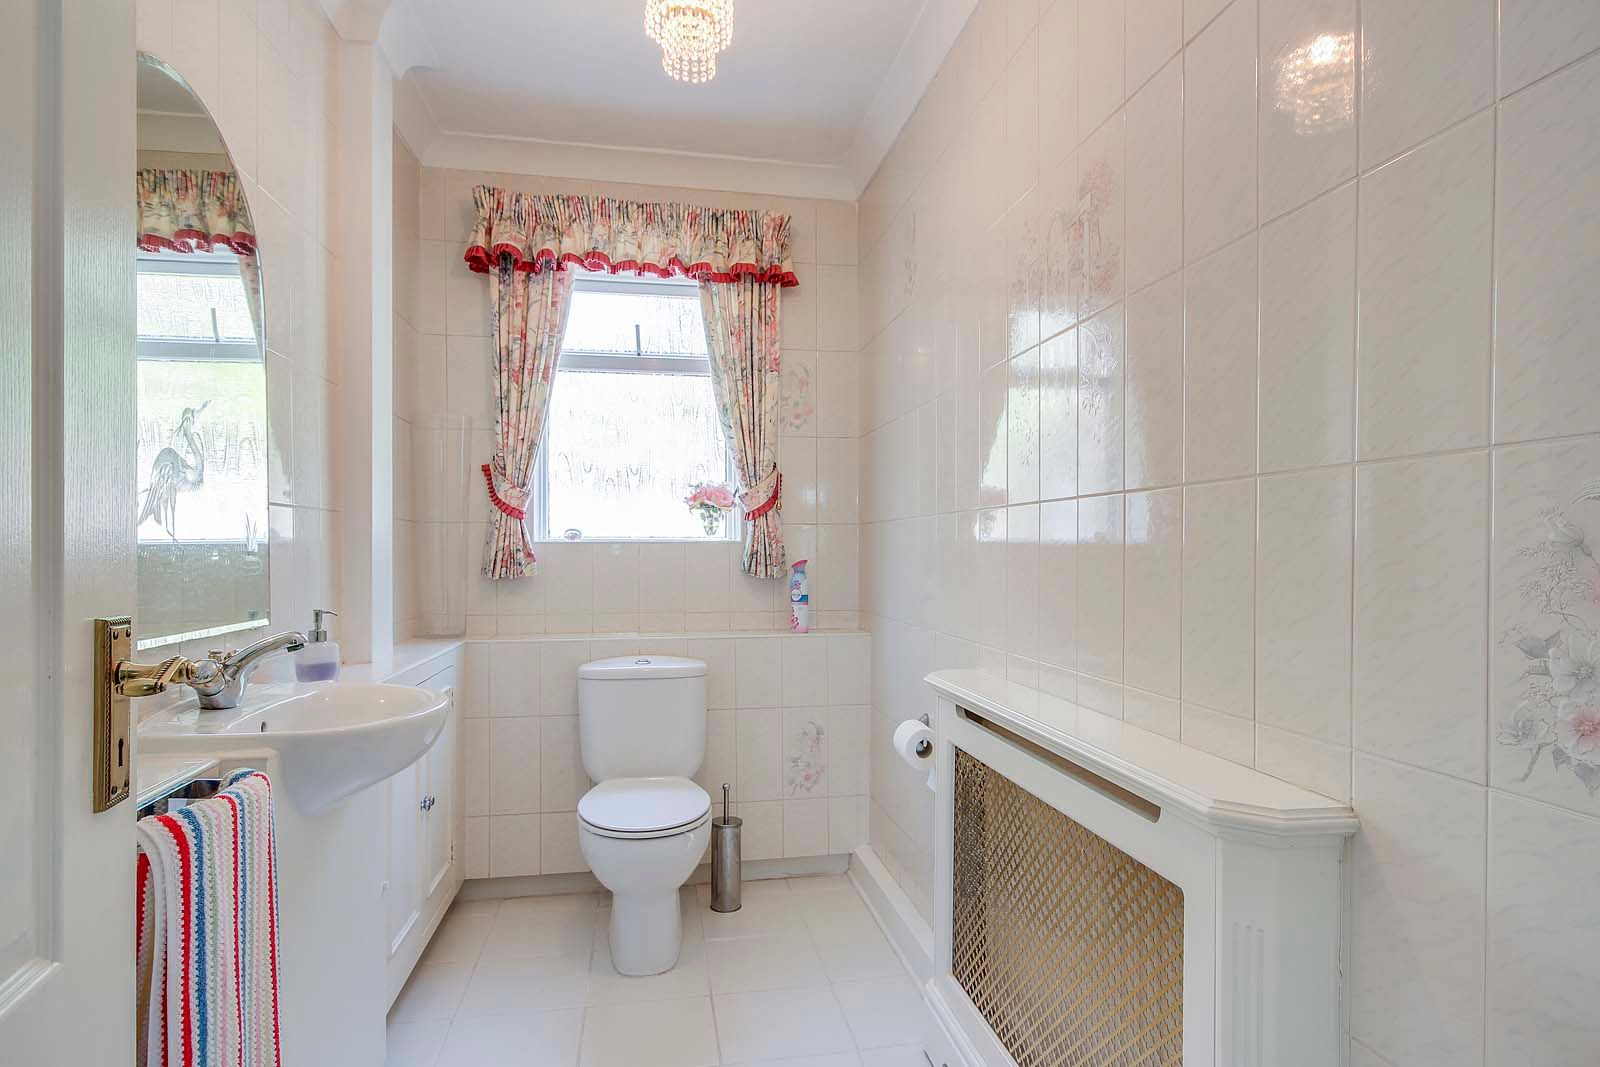 5 bed house for sale in The Ridings COMP 2019  - Property Image 14